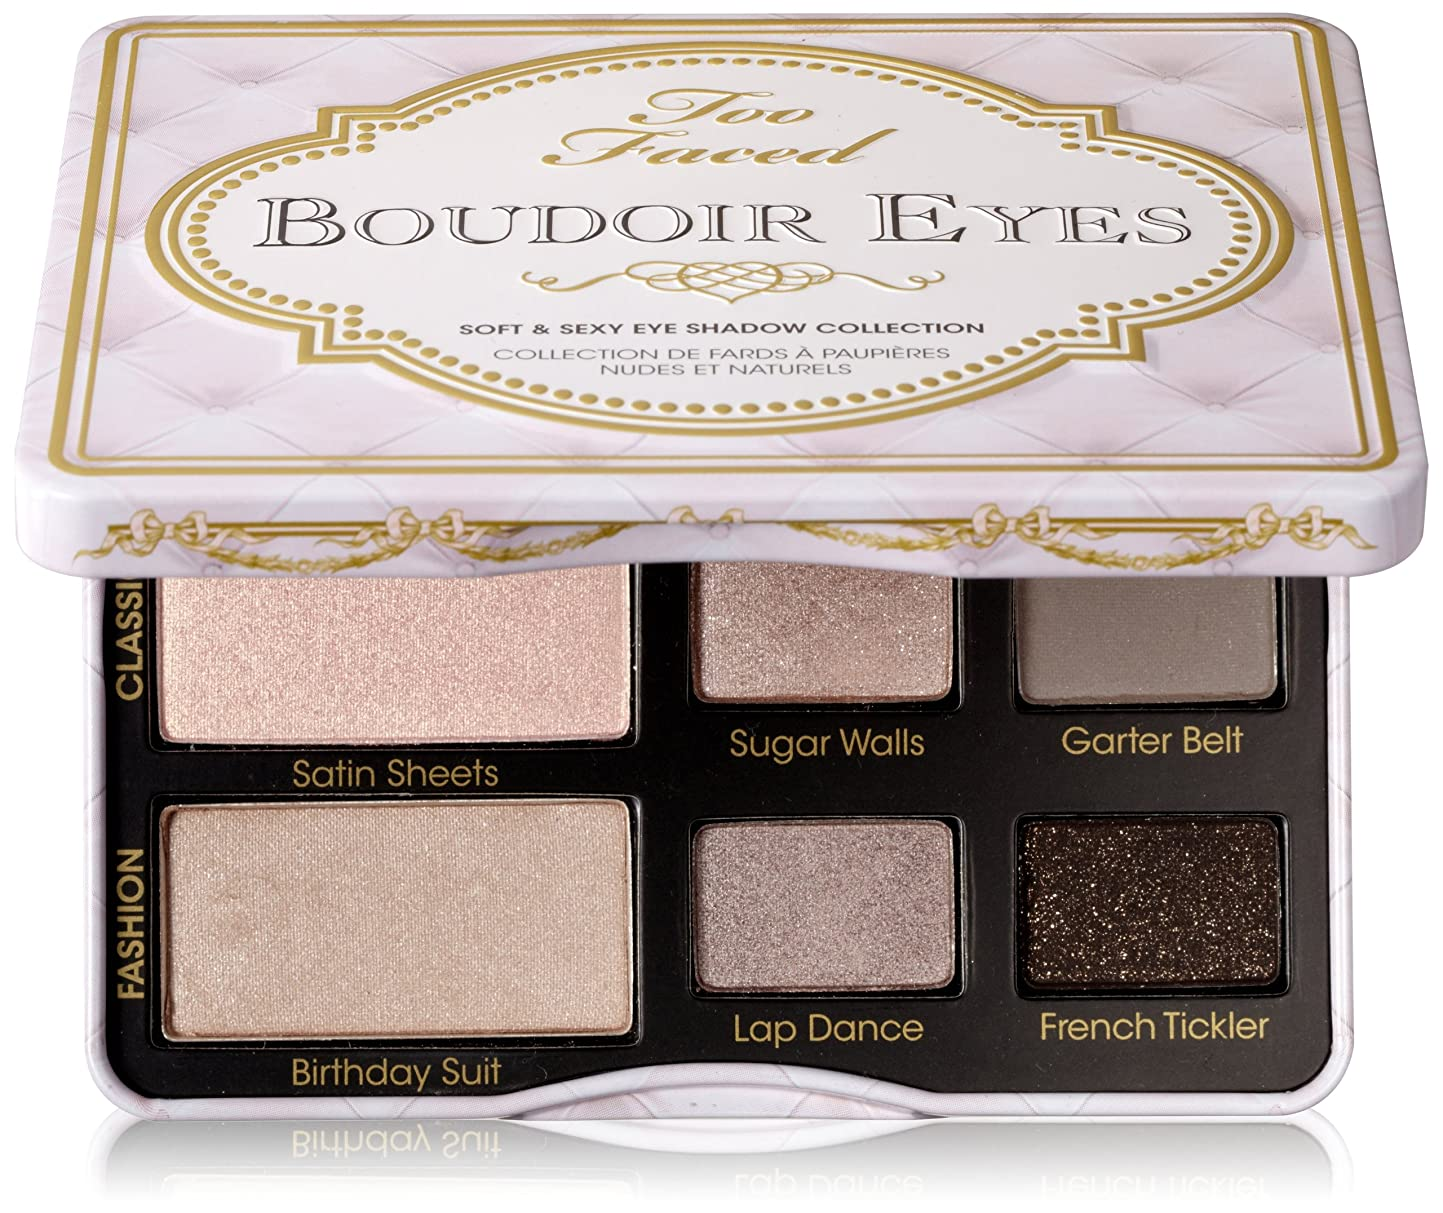 音楽を聴くセットする削るToo Faced Boudoir Eyes Soft & Sexy Eye Shadow Collection (並行輸入品)